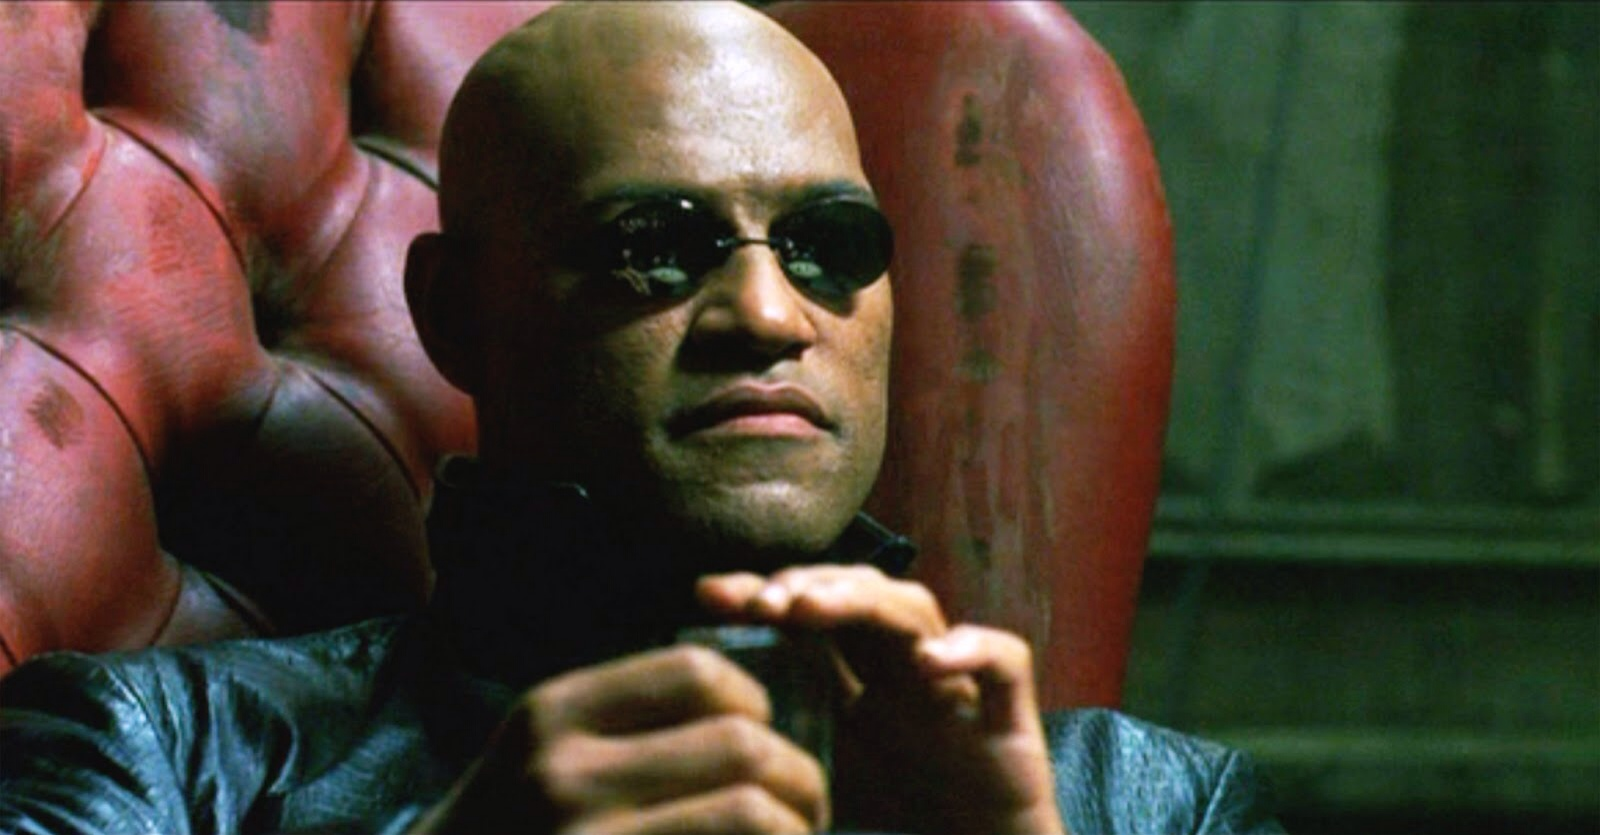 Laurence-Fishburne-as-Morpheus_The-Matrix